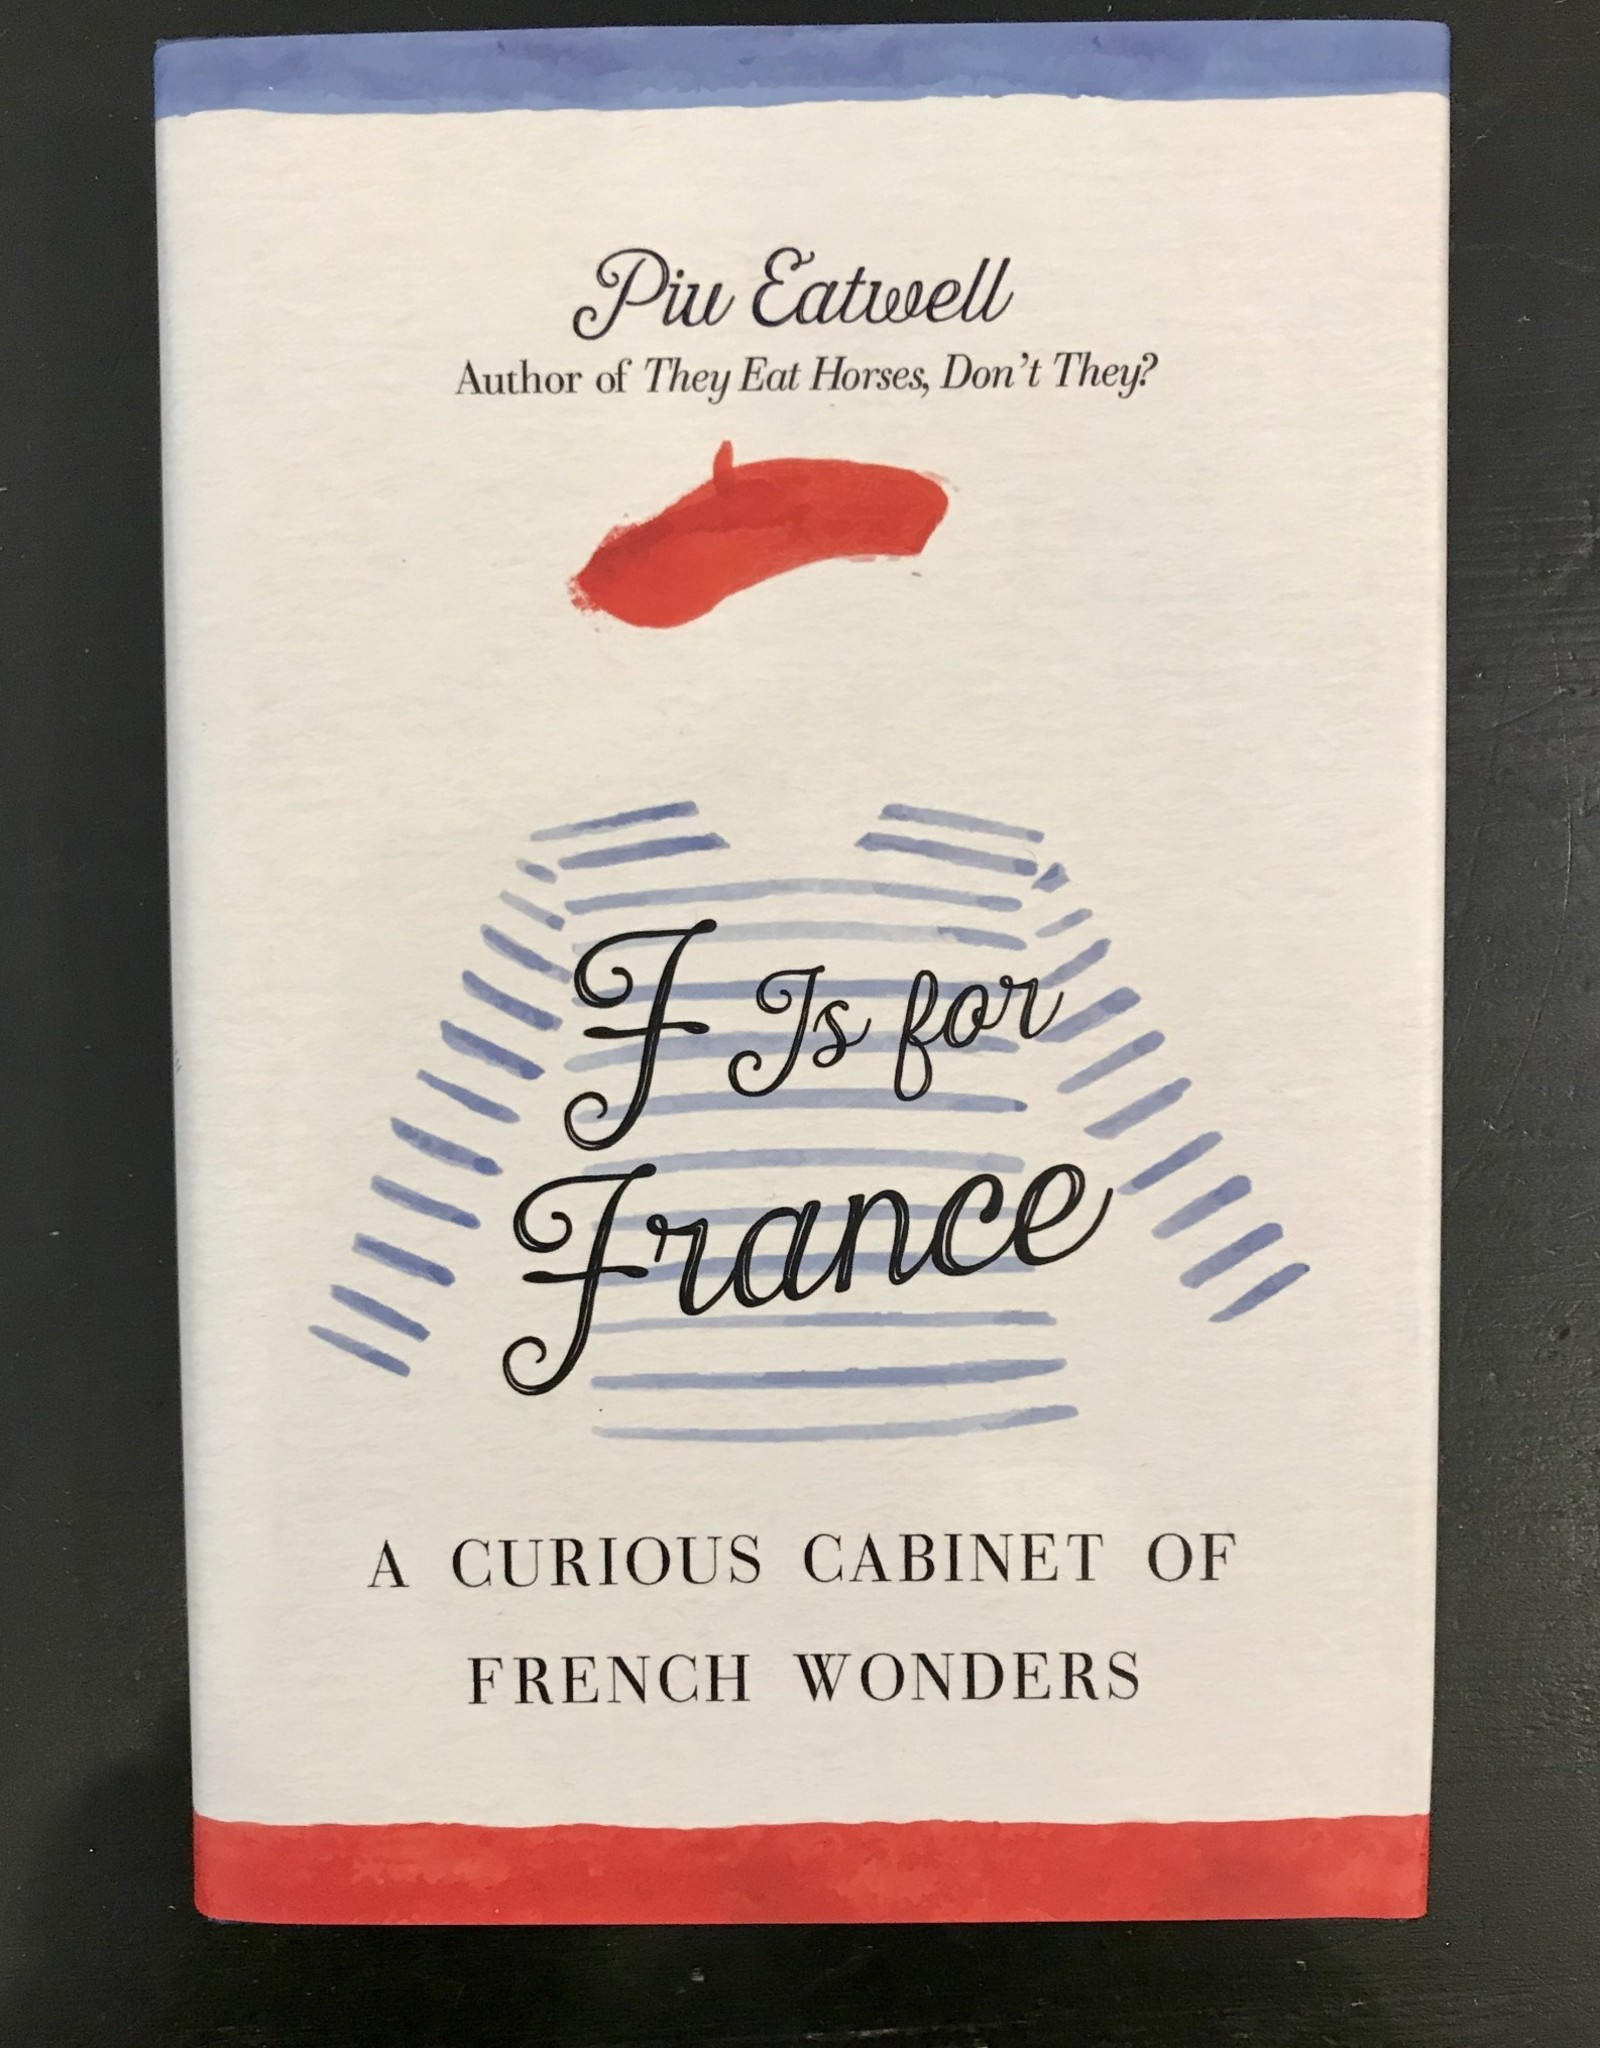 CGDistributors F is for France - By Piu Eatwell. A Curious Cabinet Of French Wonders!